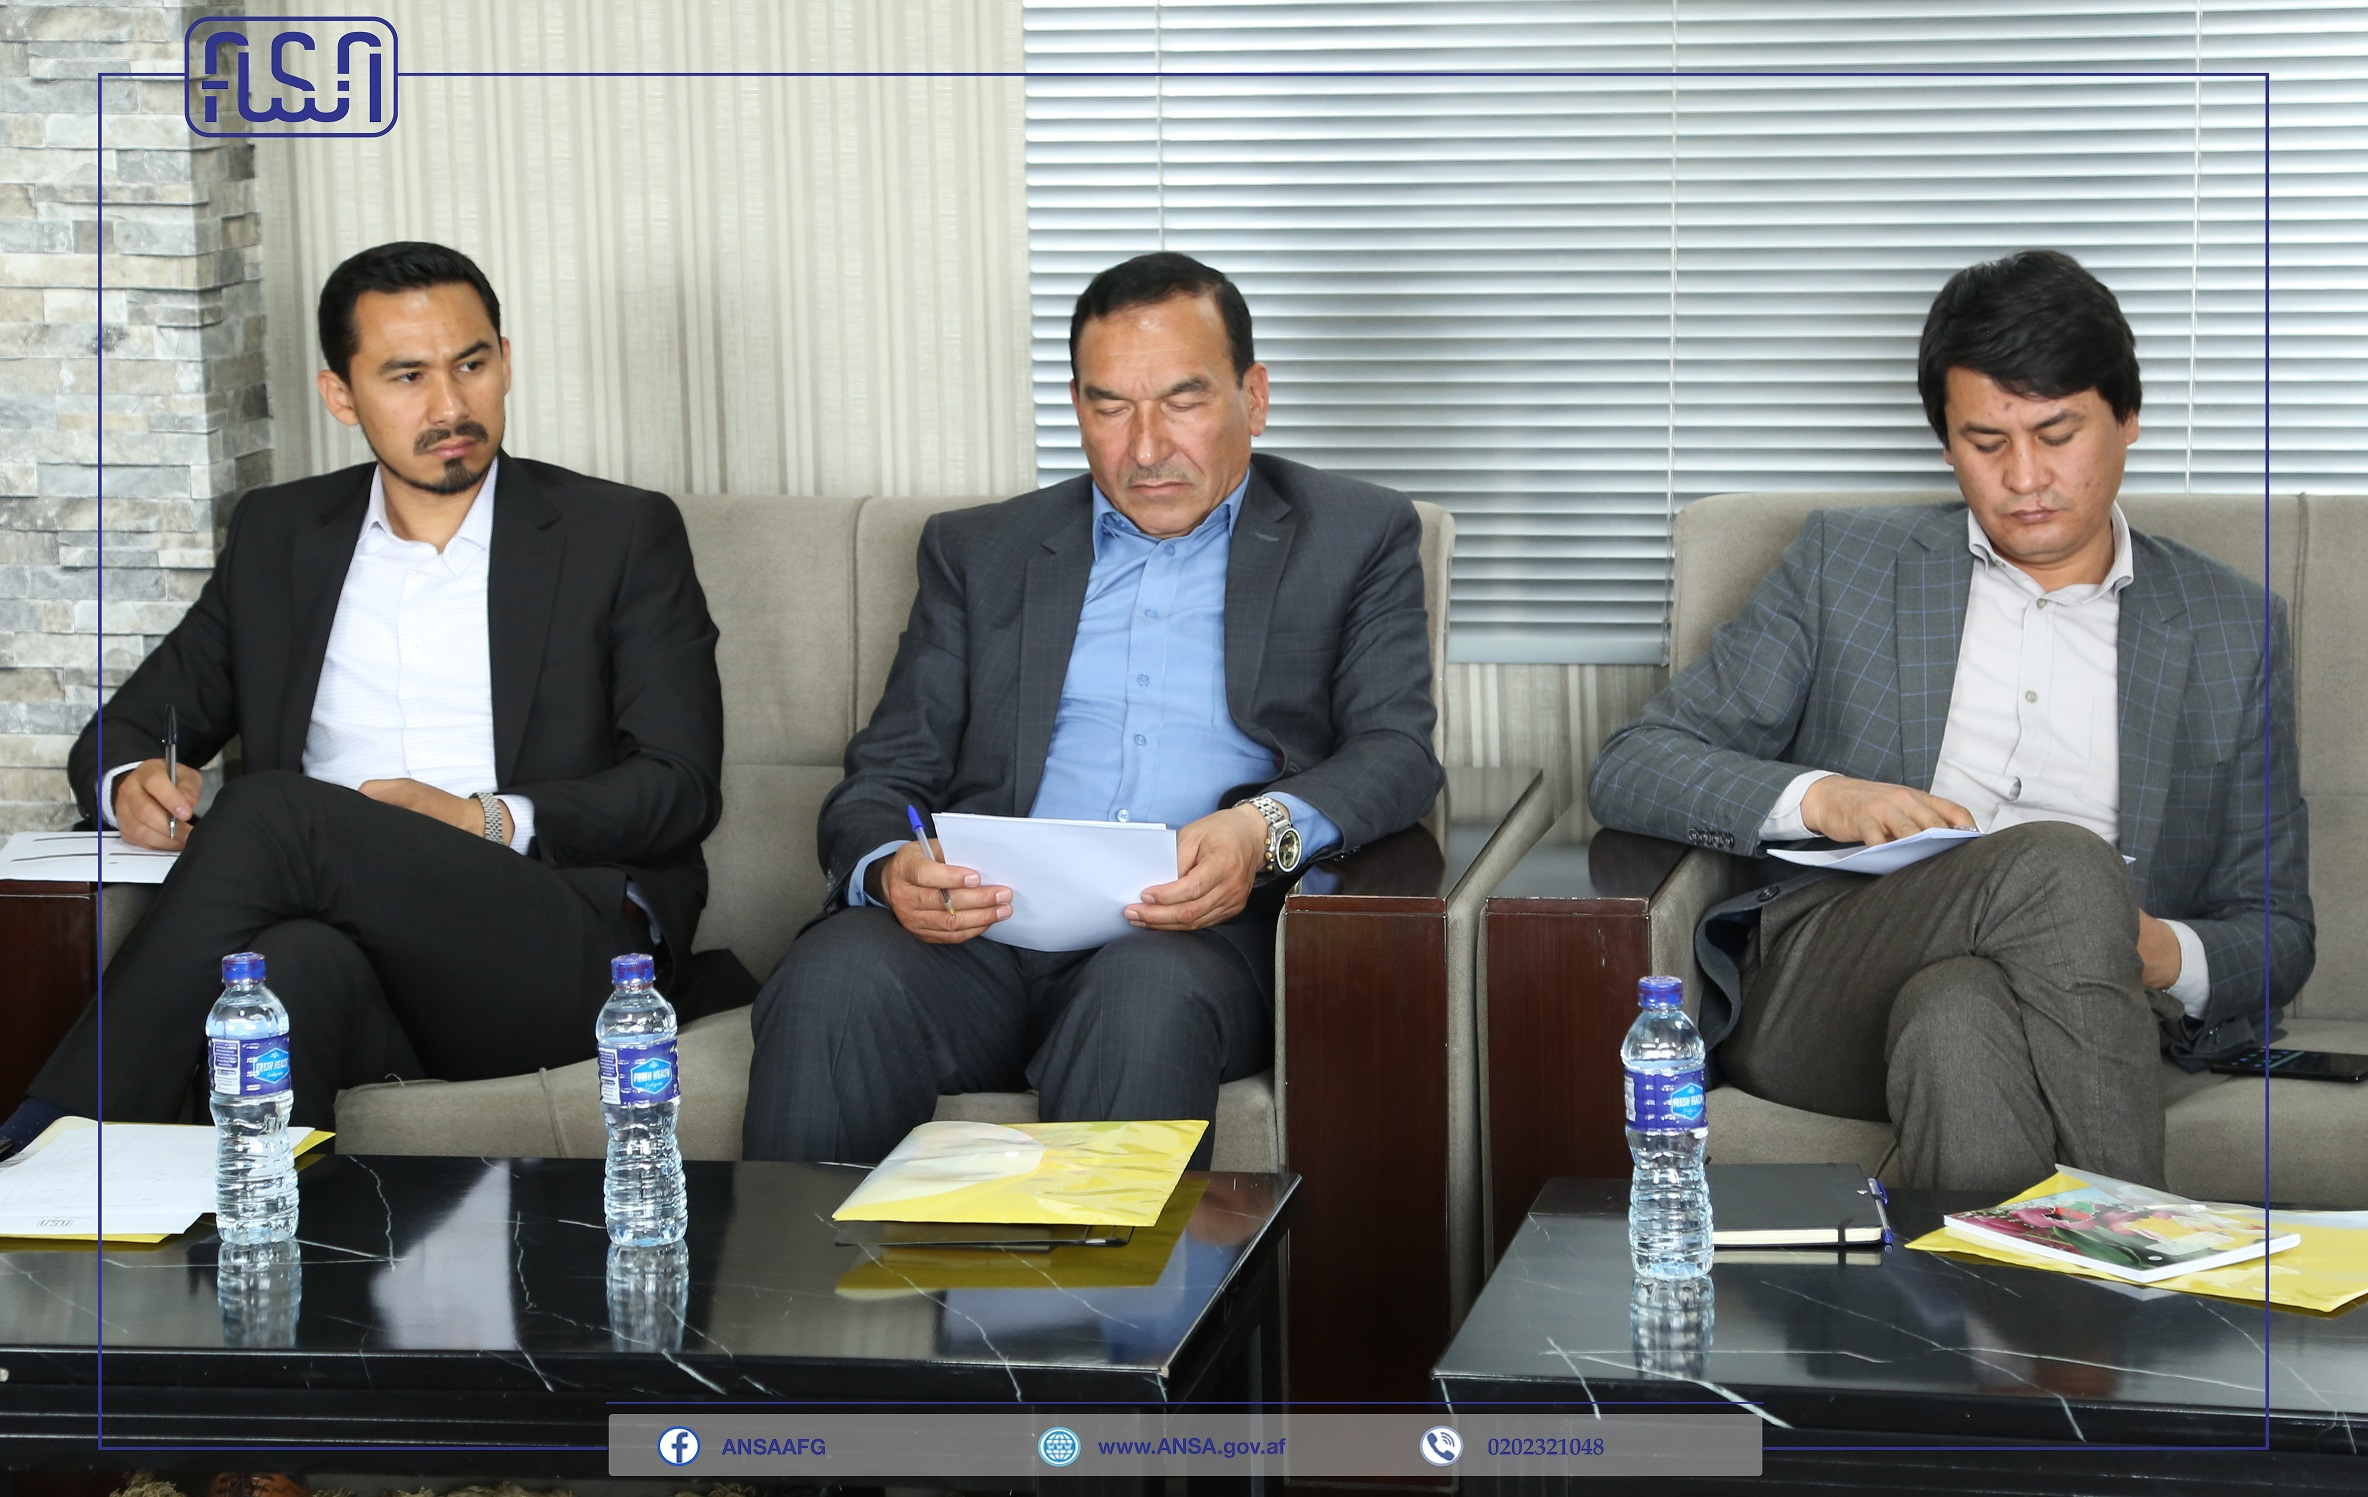 A meeting of the Technical Committee on Barriers to Trade was held.